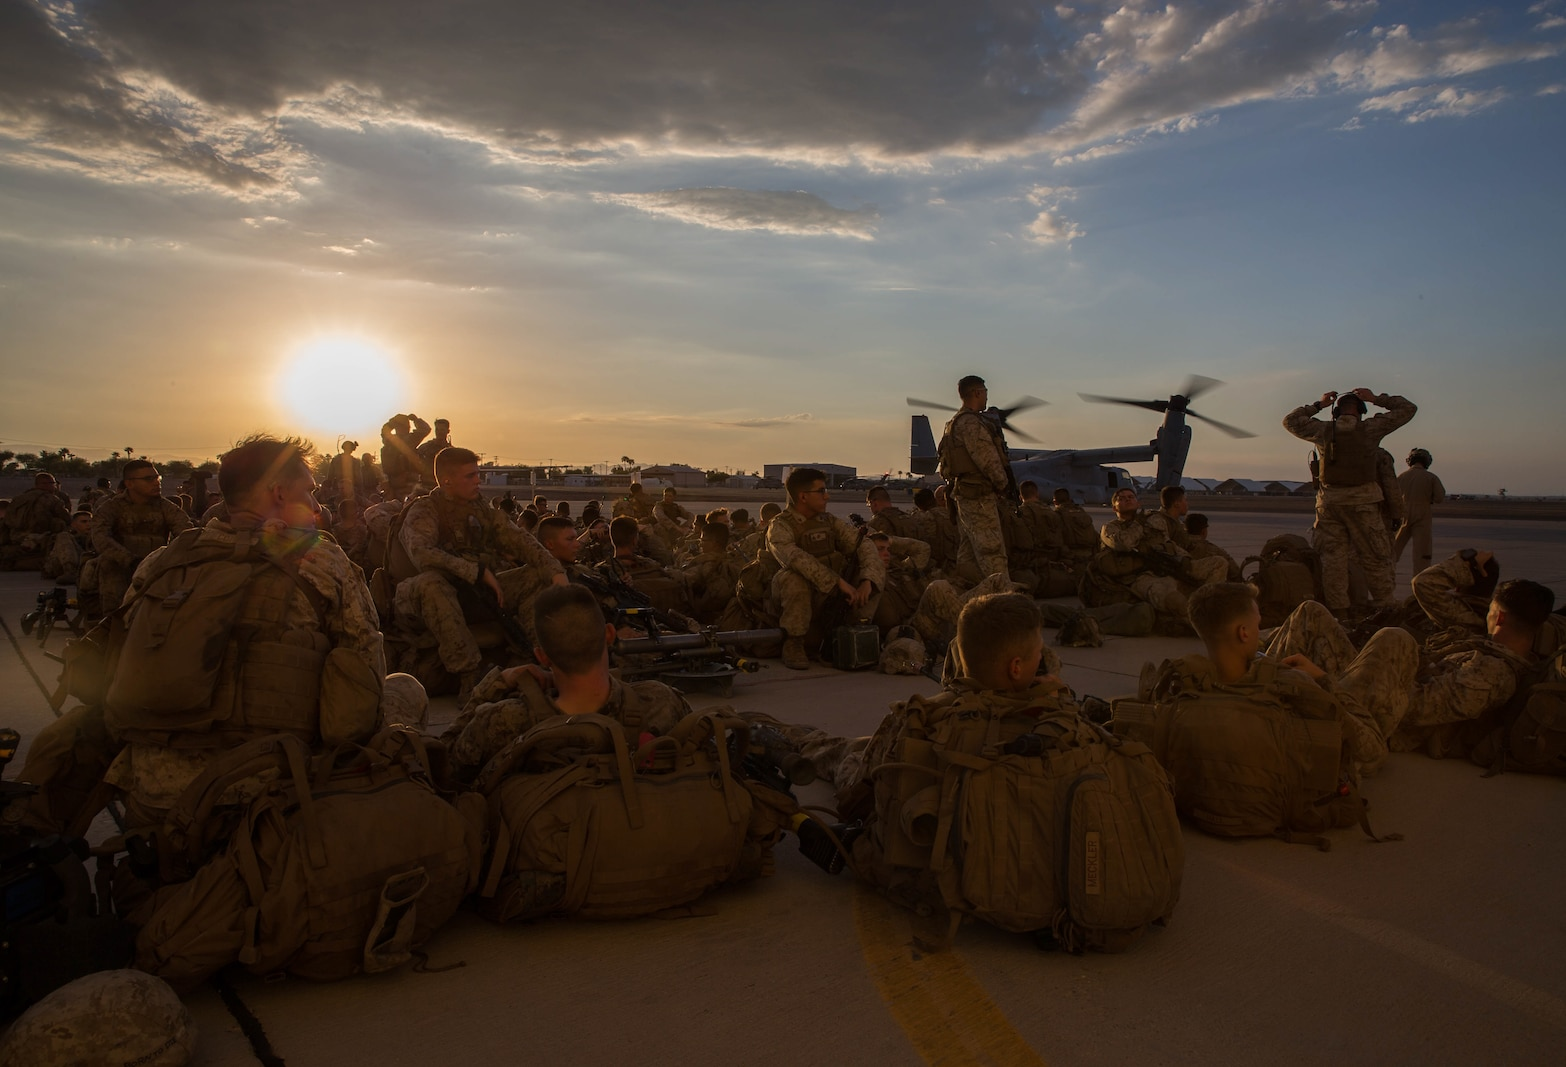 U.S. Marines with 2nd Battalion, 4th Marines, wait to board the MV-22 Osprey during Summer Fury at Naval Air Facility El Centro, Calif., Aug. 4, 2017.